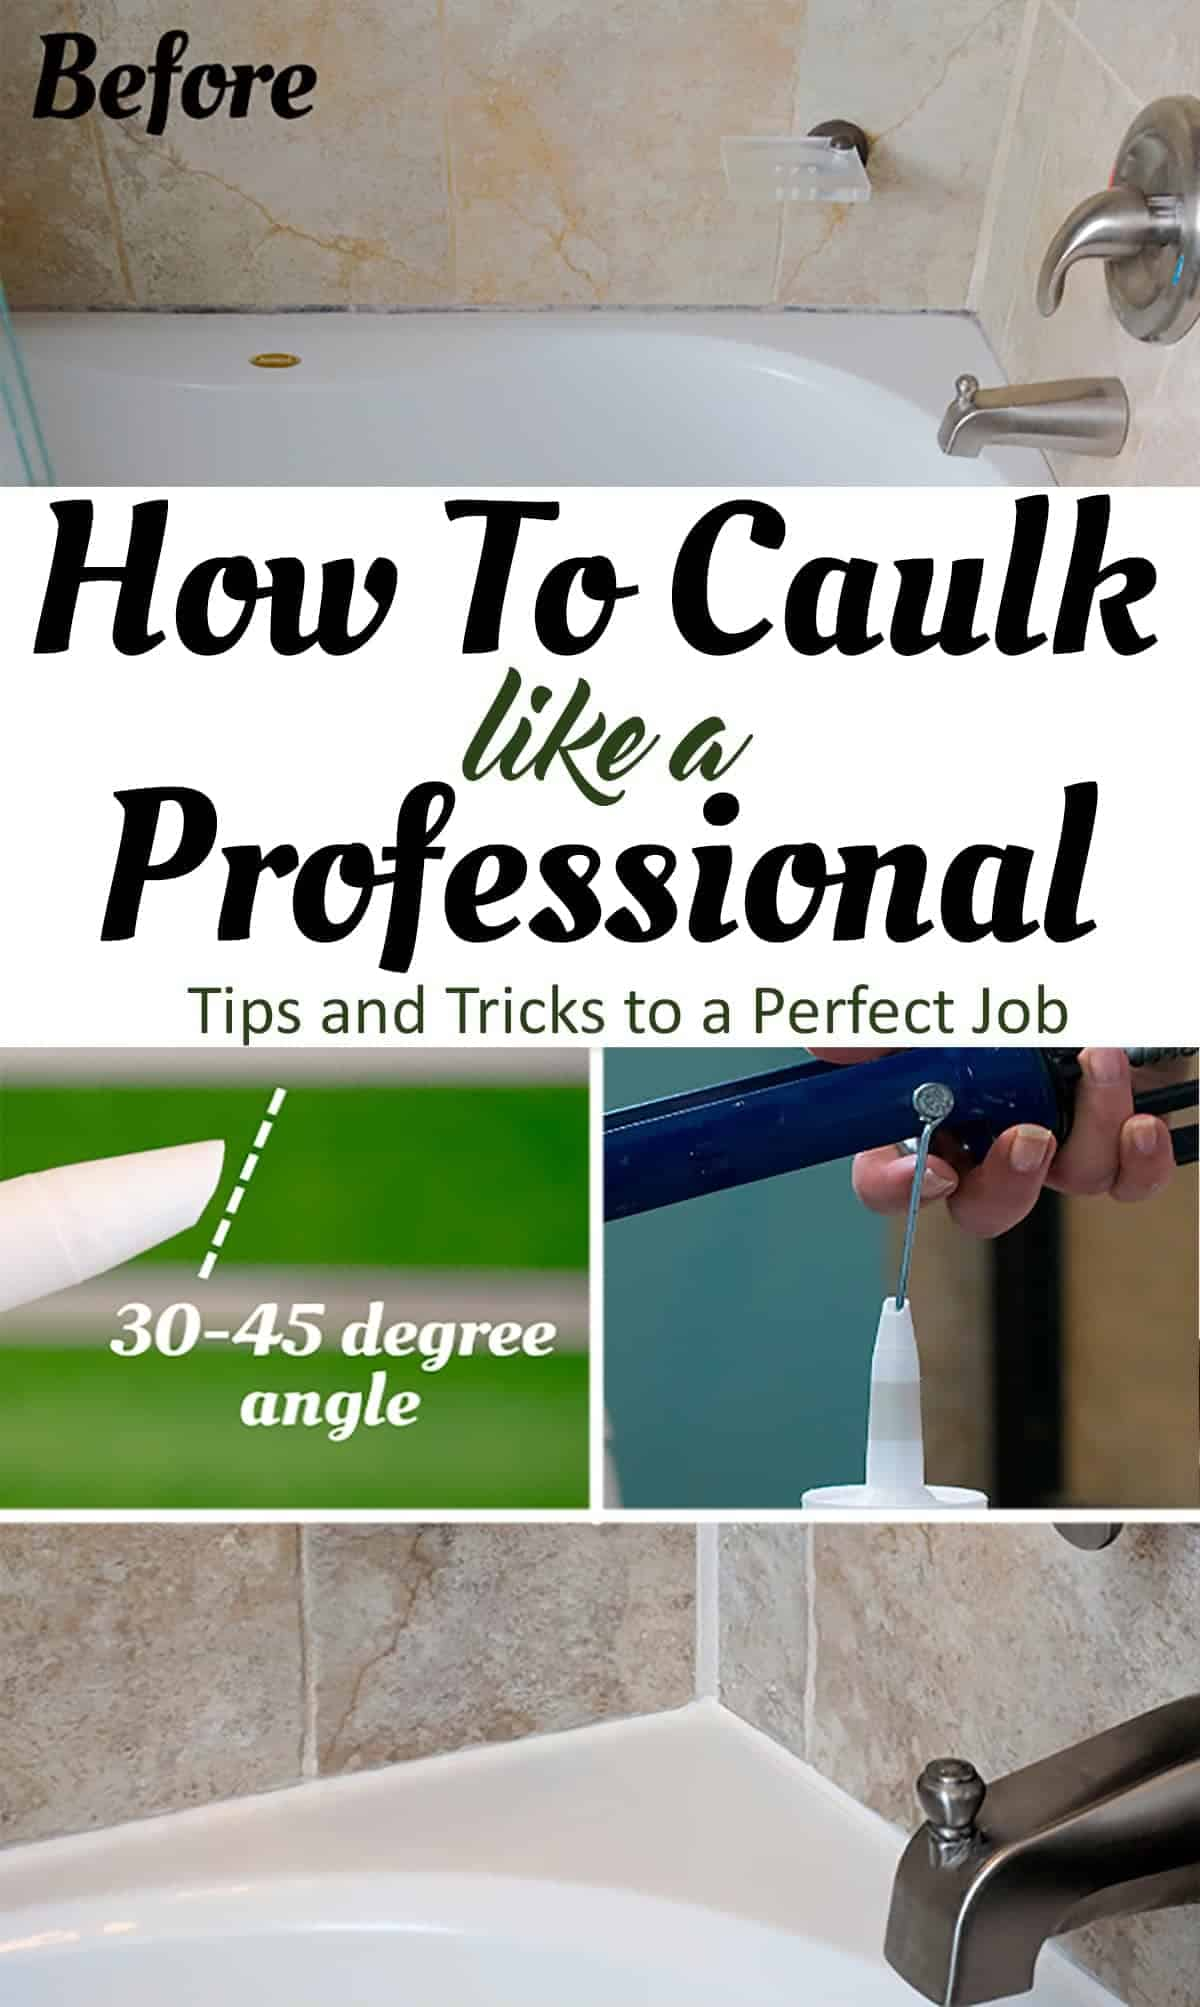 How to Caulk like a professional with images of caulk tip, caulk gun and bathtub caulk.